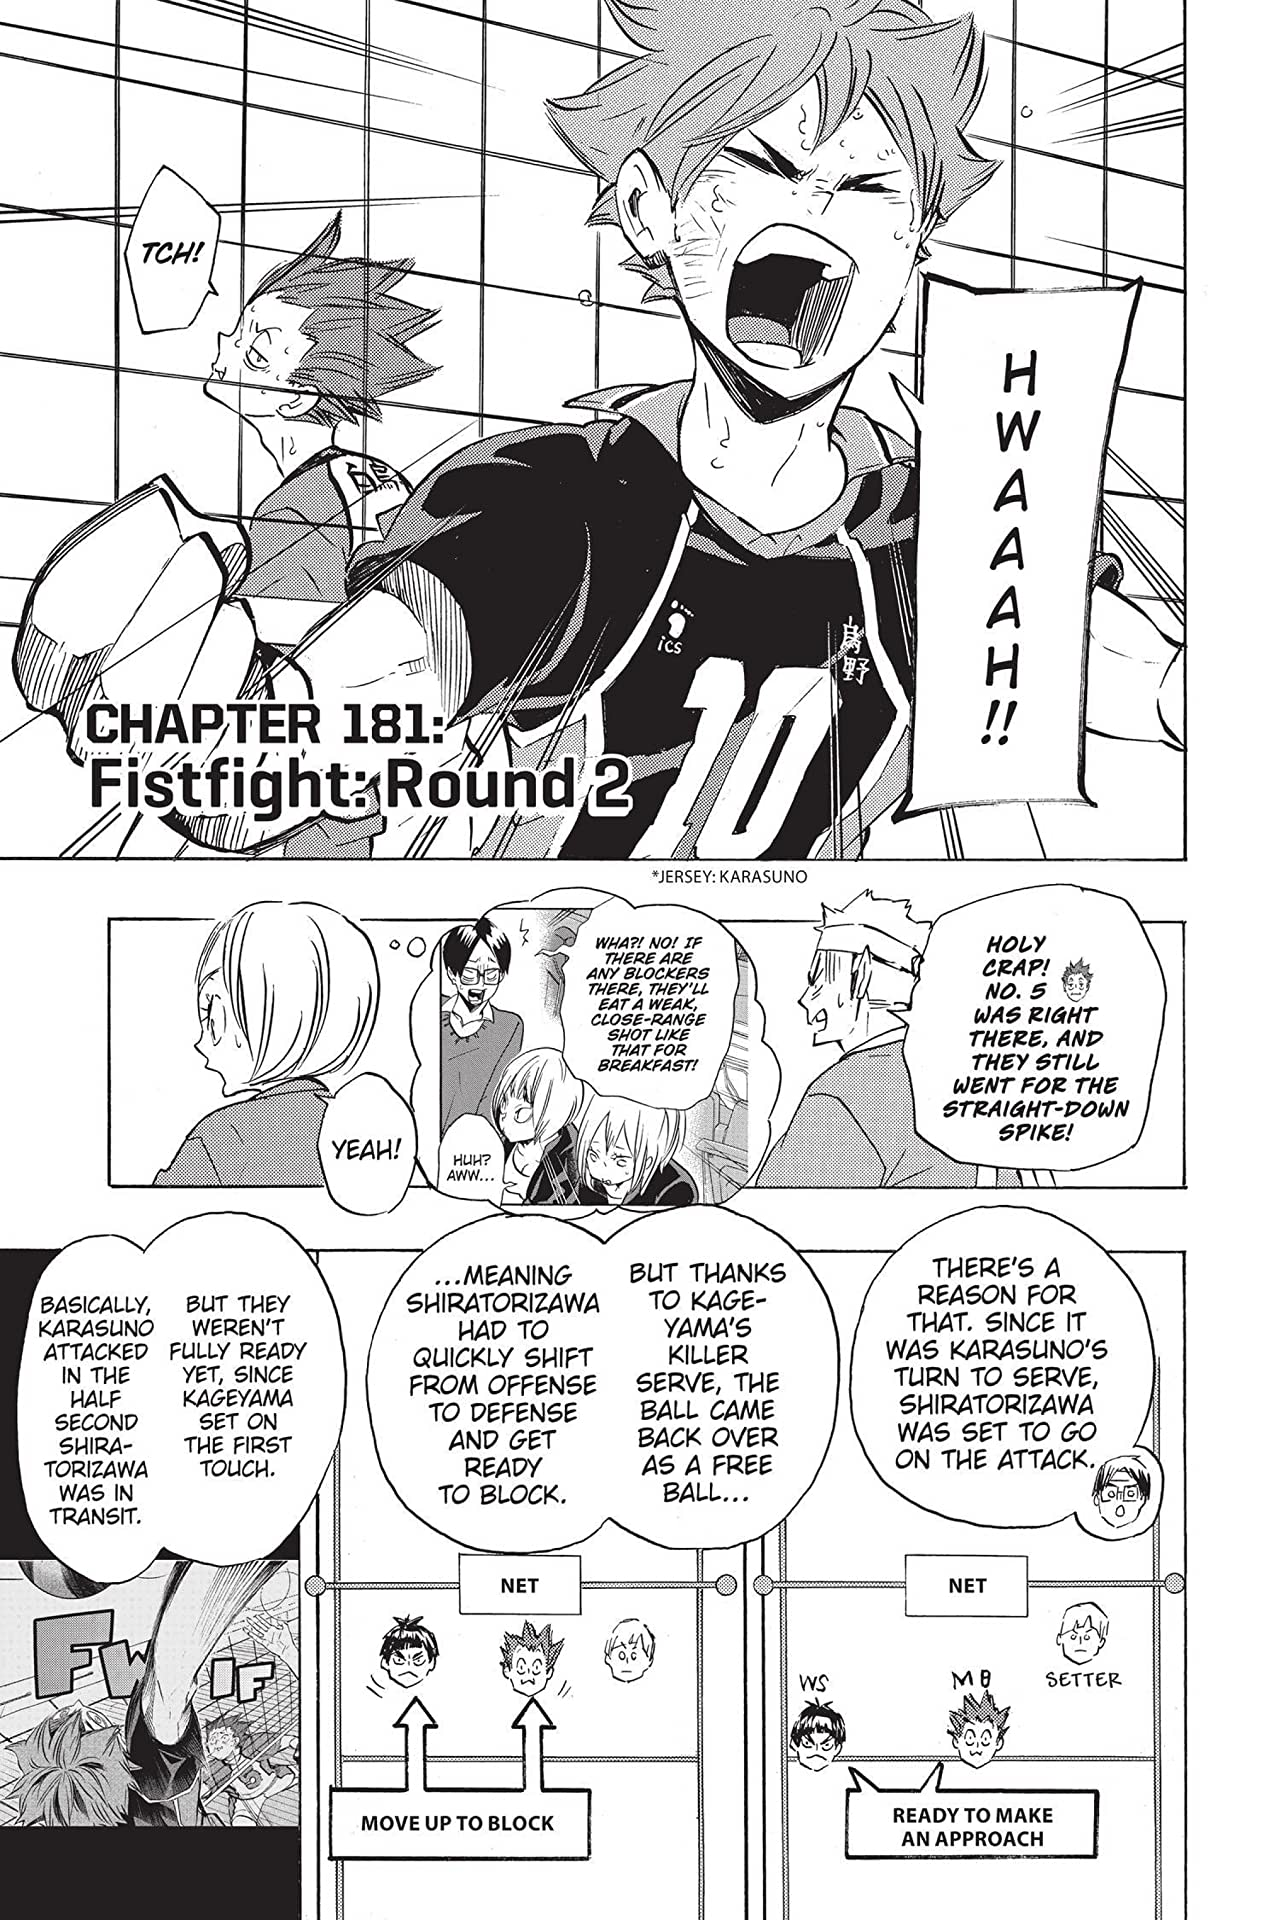 Haikyu!! Vol. 21